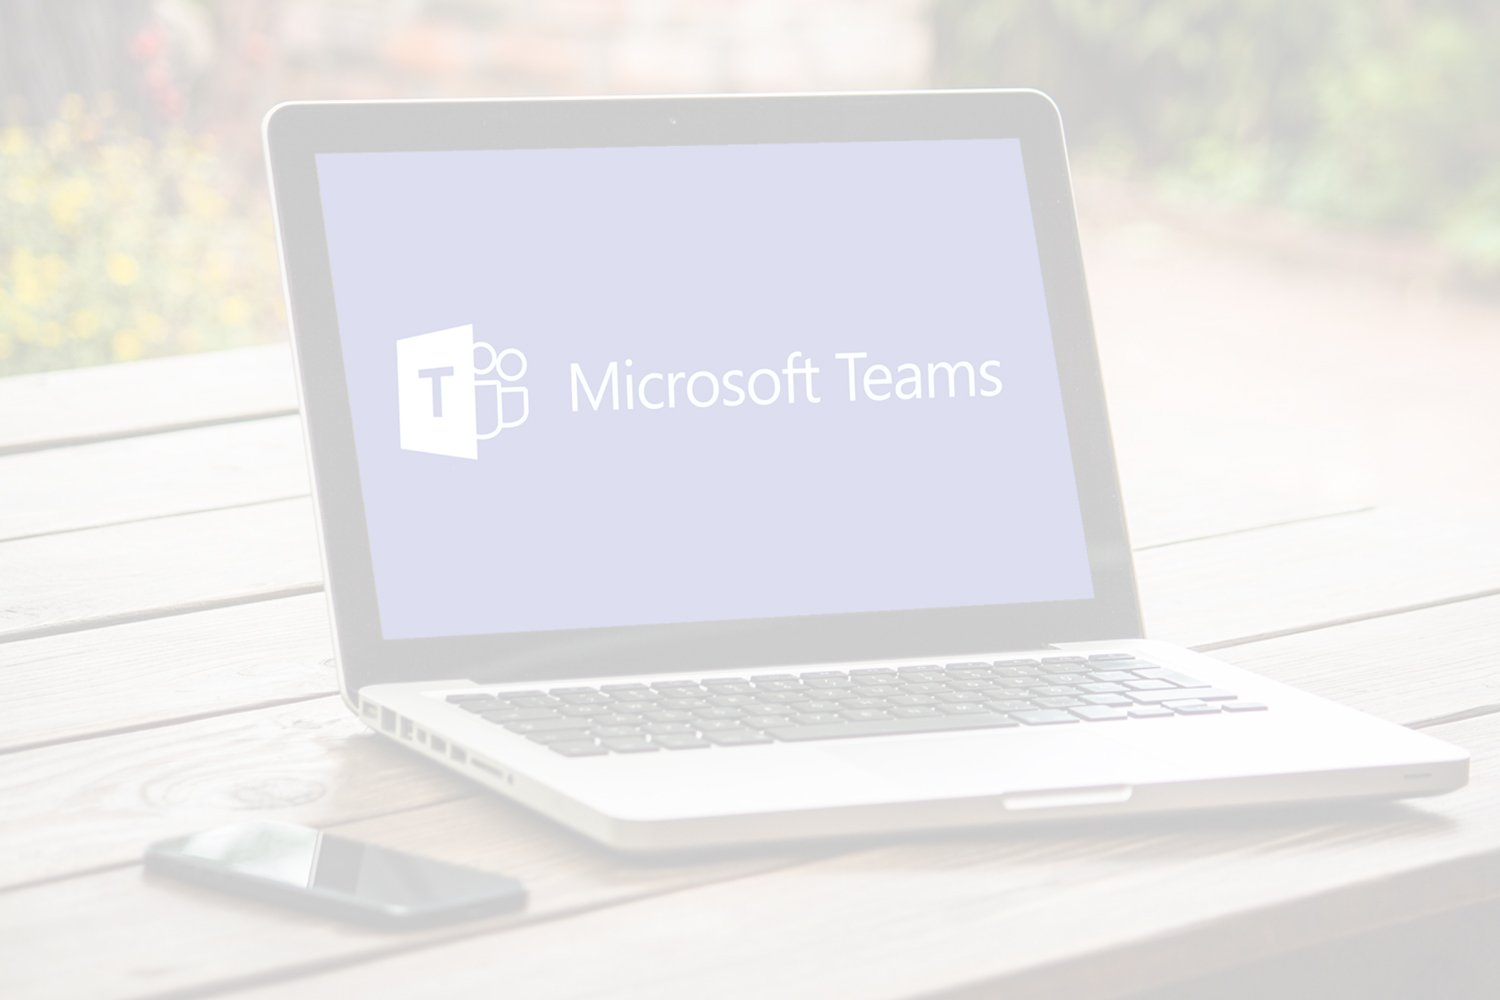 What You Need to Know To Get Started With Microsoft Teams for Office 365